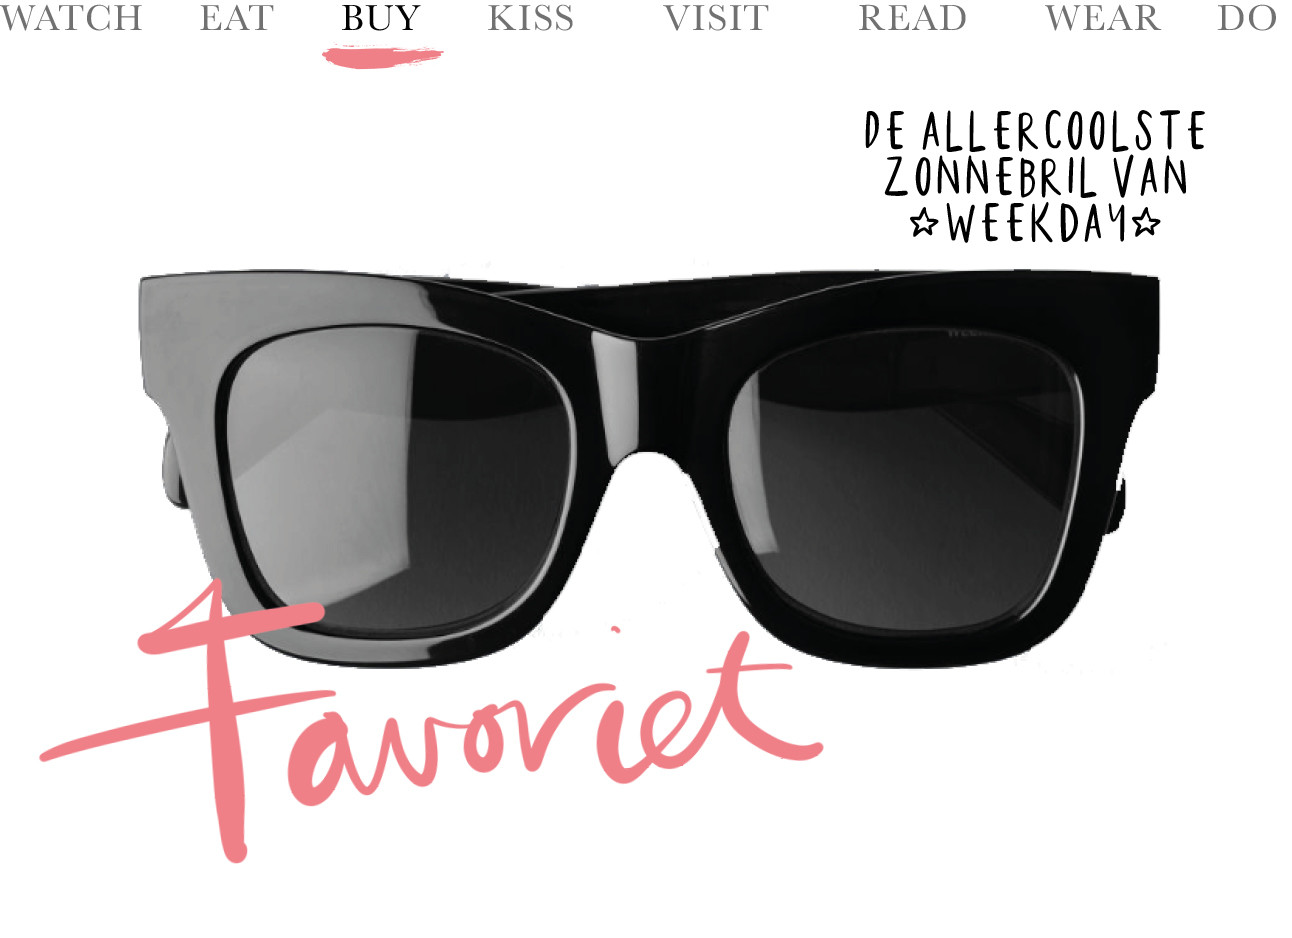 big pair of black sunglasses bij weekday pink words favoriet